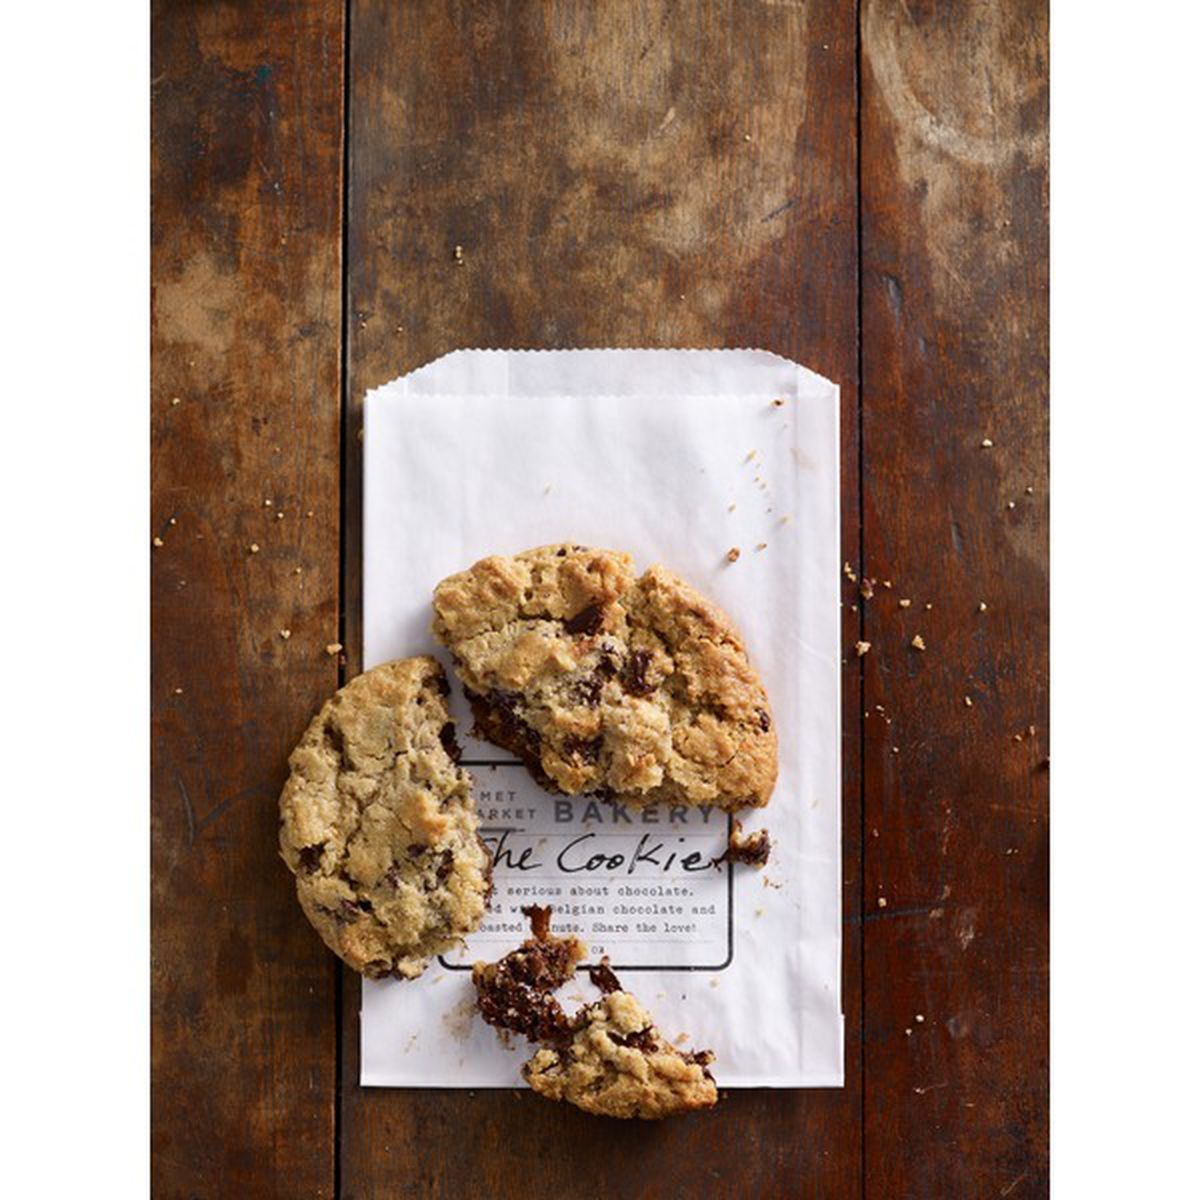 Found: Arguably the Best Store Bought Chocolate Chip Cookie